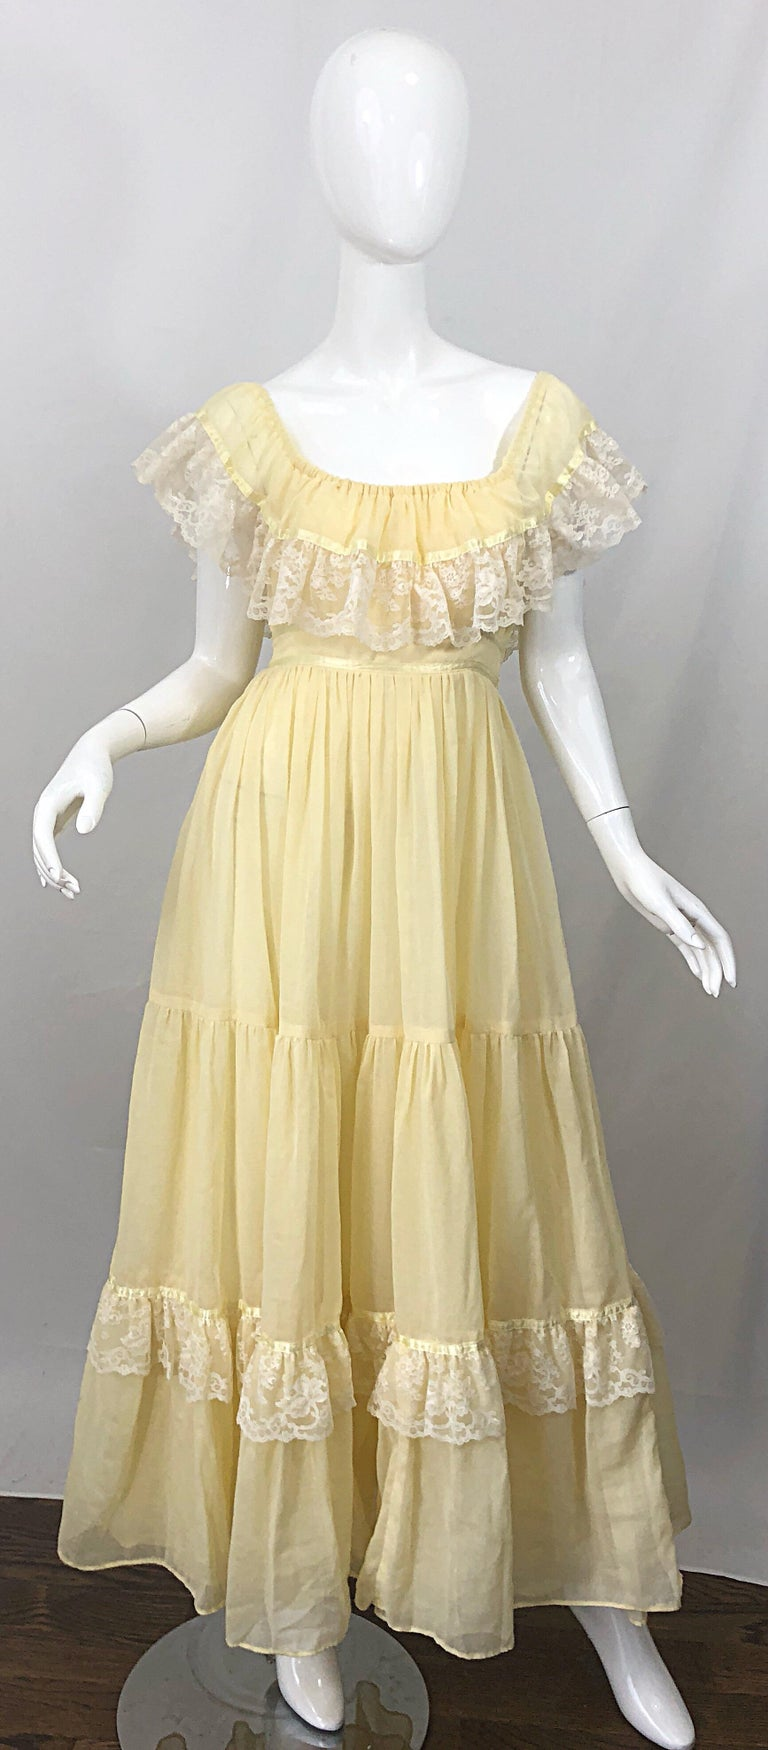 Amazing 1970s pale yellow and white cotton voile and lace boho empire maxi dress! Features white lace around the bodice and at the ruffle hem. Can be worn on or off the shoulders. Flattering empire waist is easy to wear. Ties at back waist can